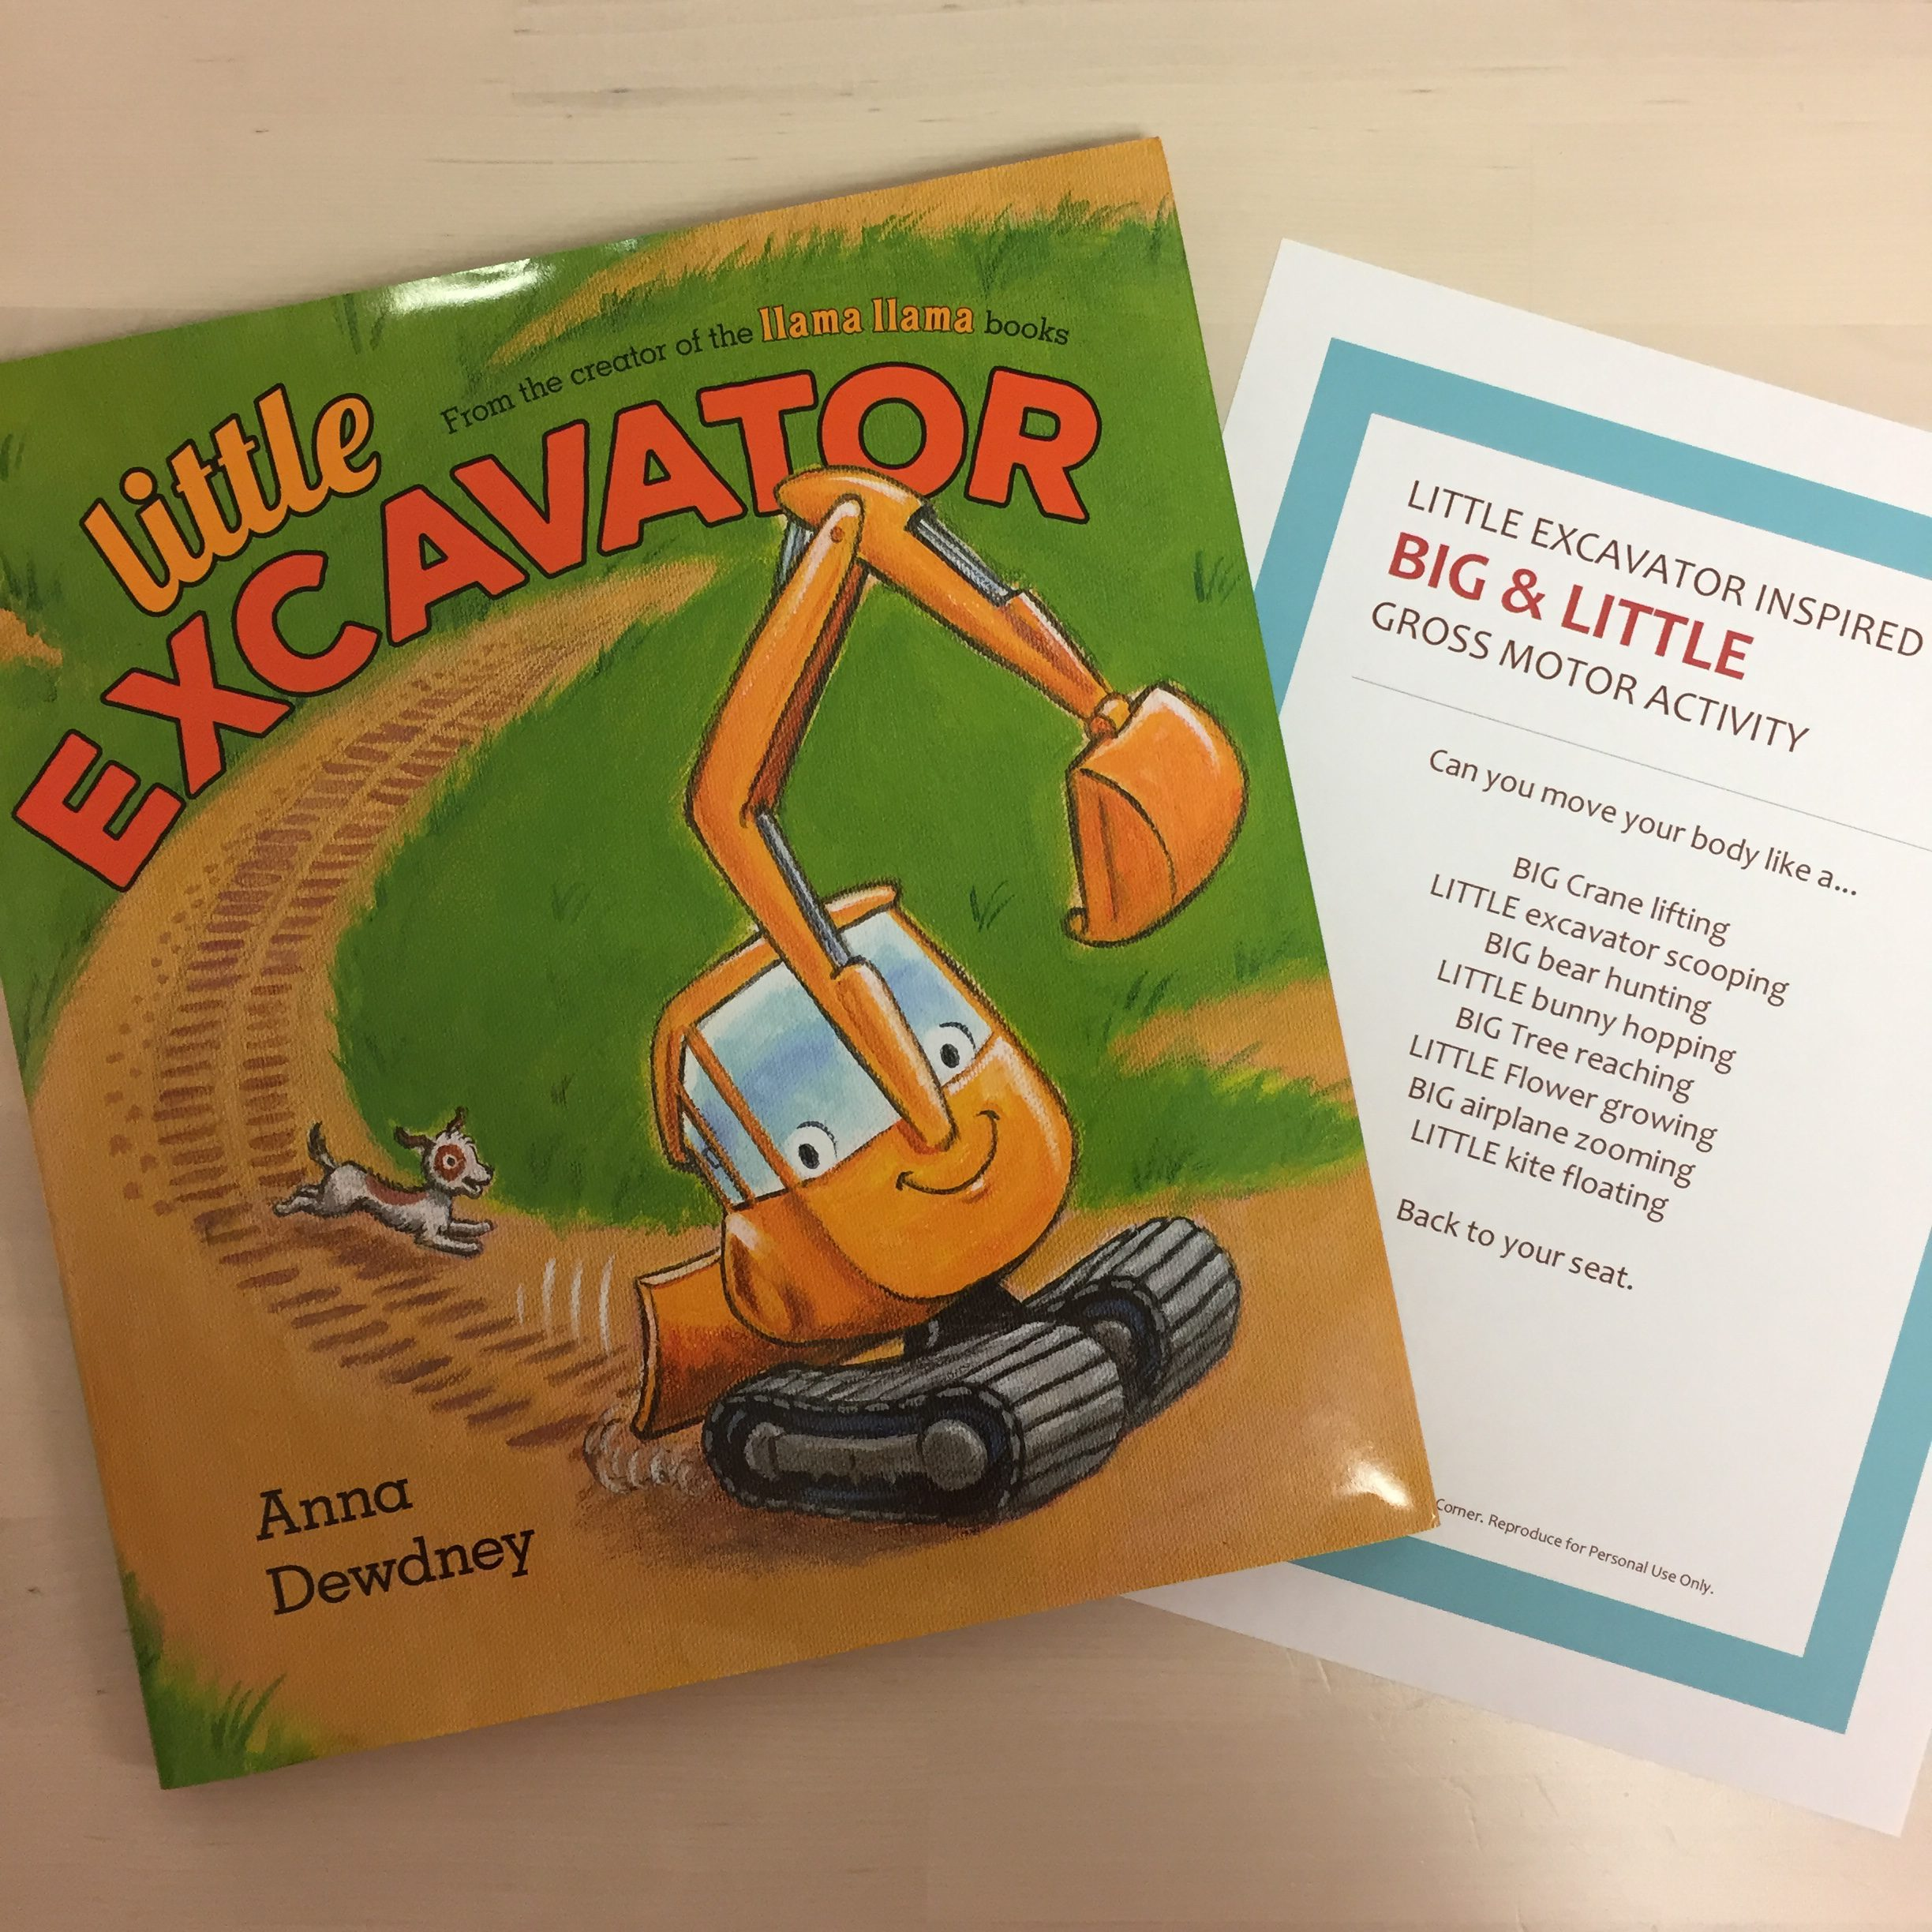 Big and Little Storytime inspired by Little Excavator with FREE Printable